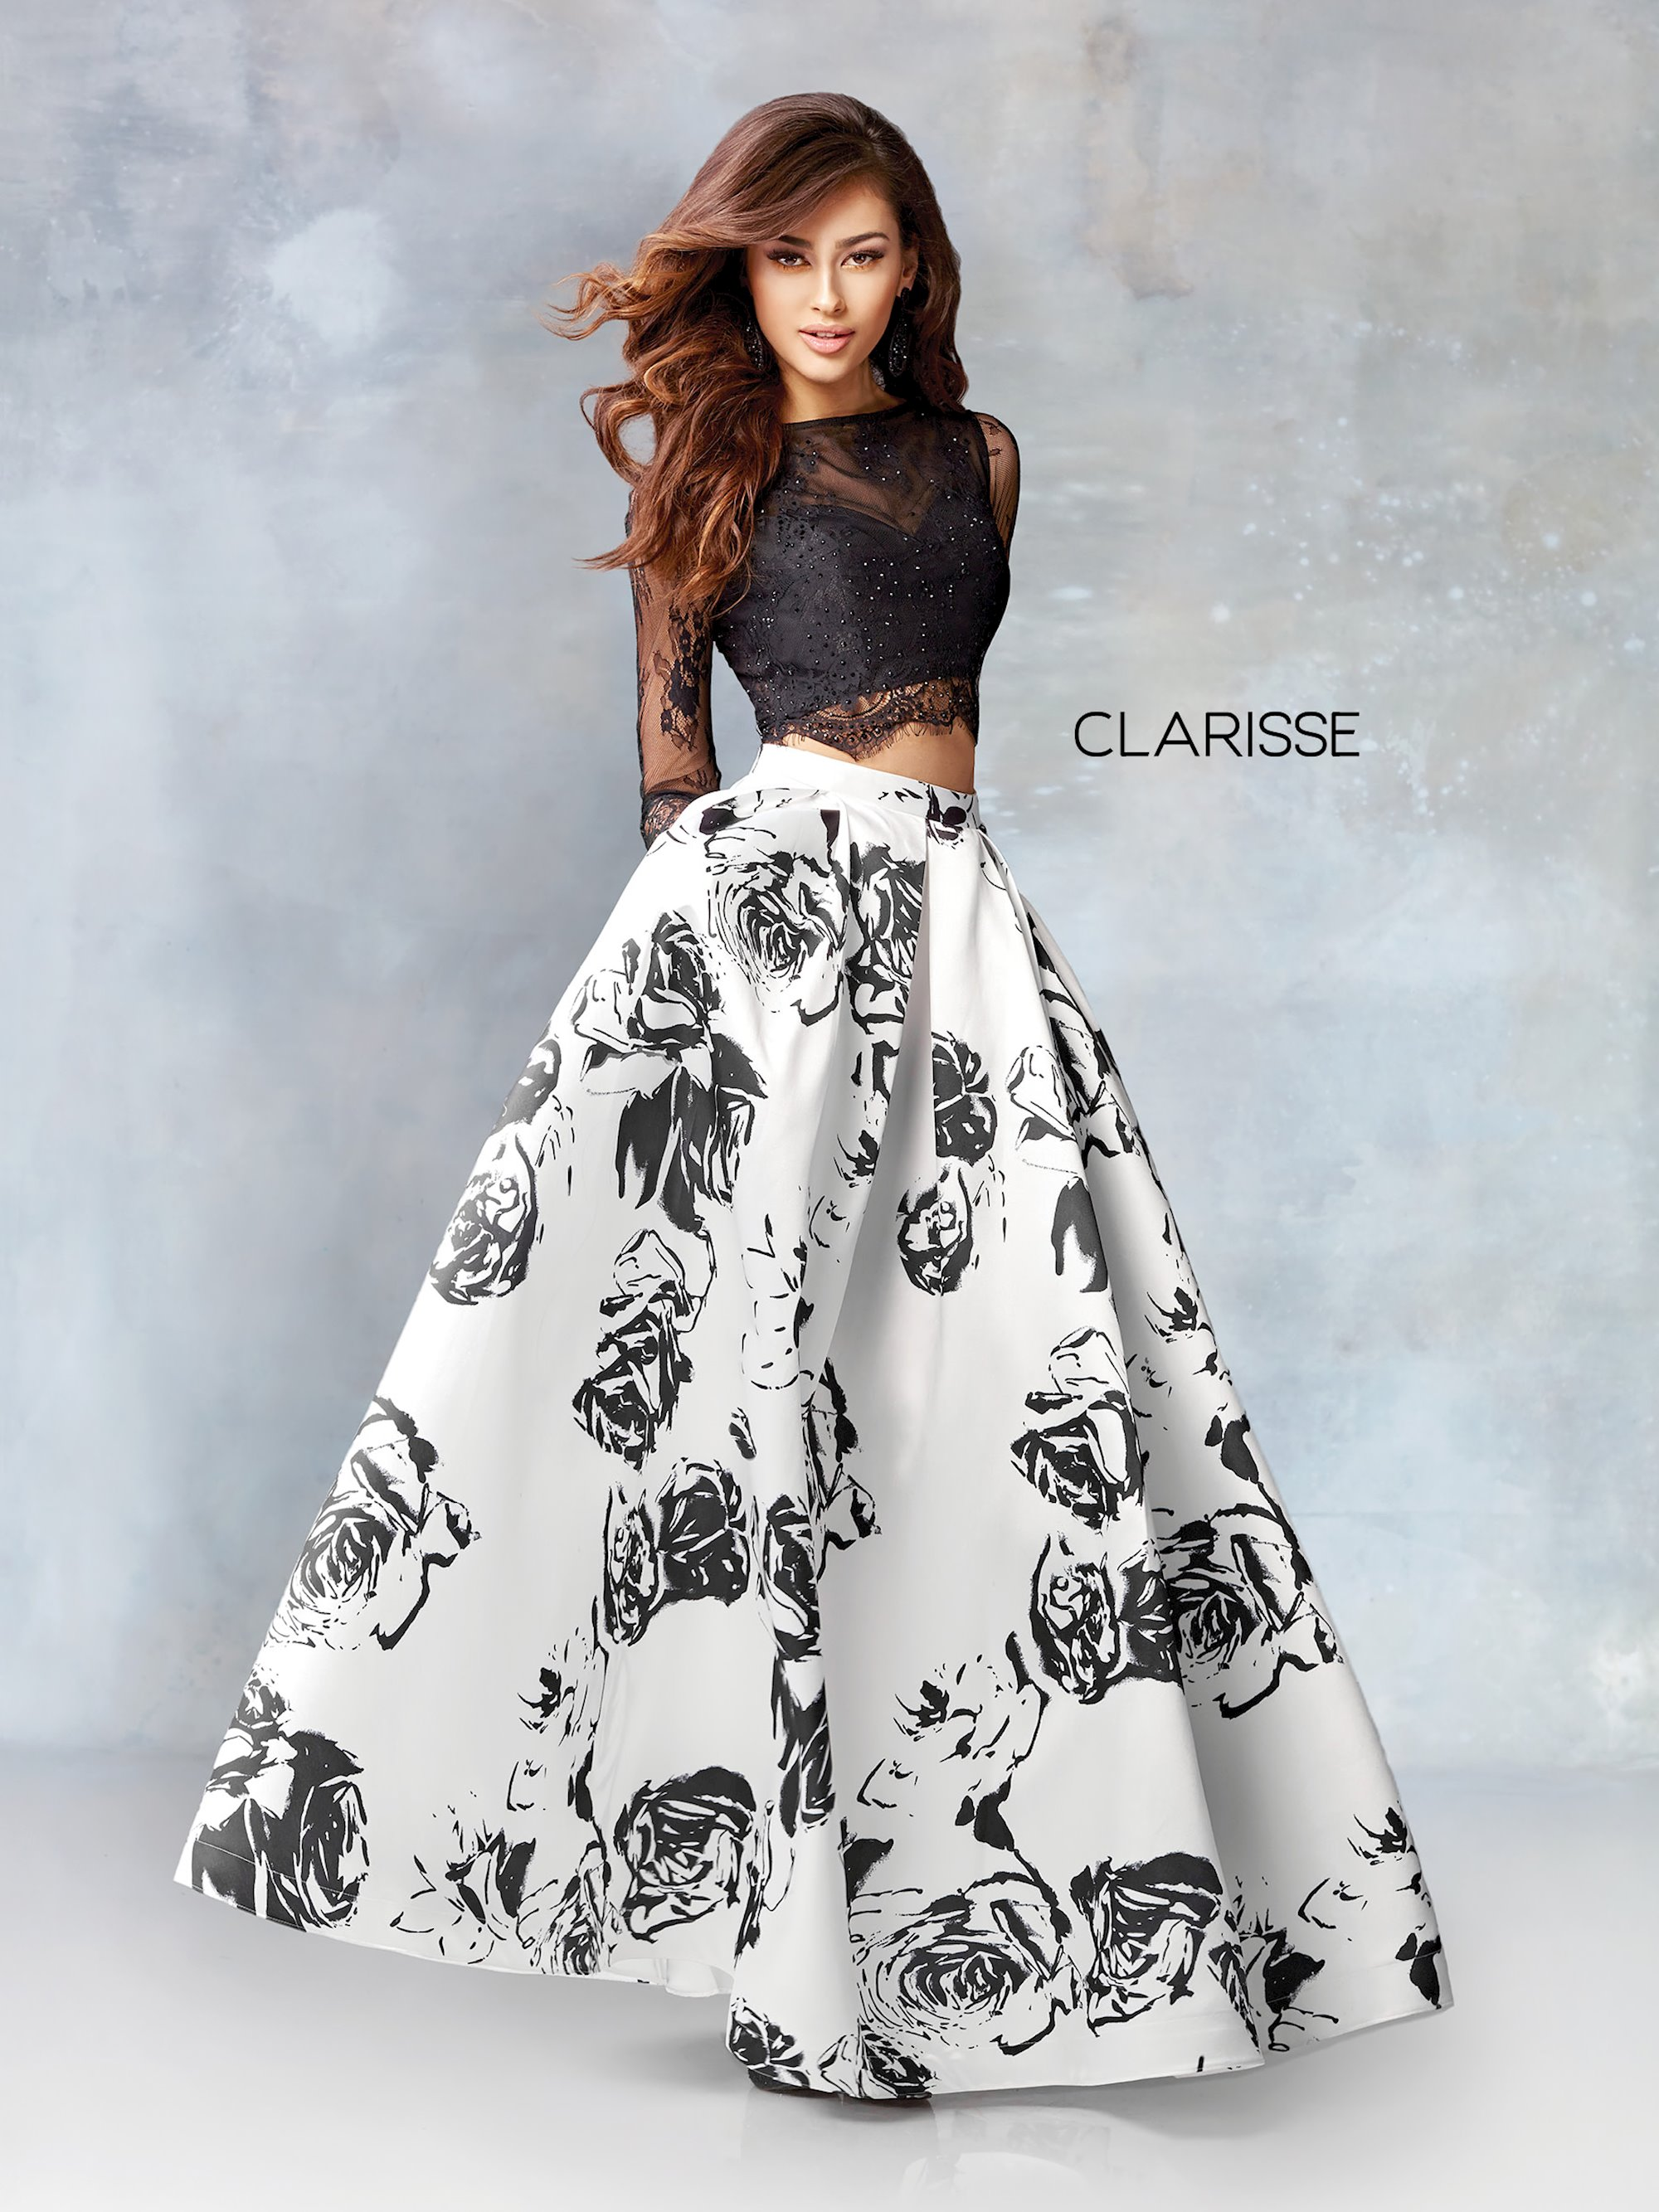 7c69e8ab46d Clarisse Prom Dresses Two Piece Black and White Long Sleeve Dress. Double  tap to zoom